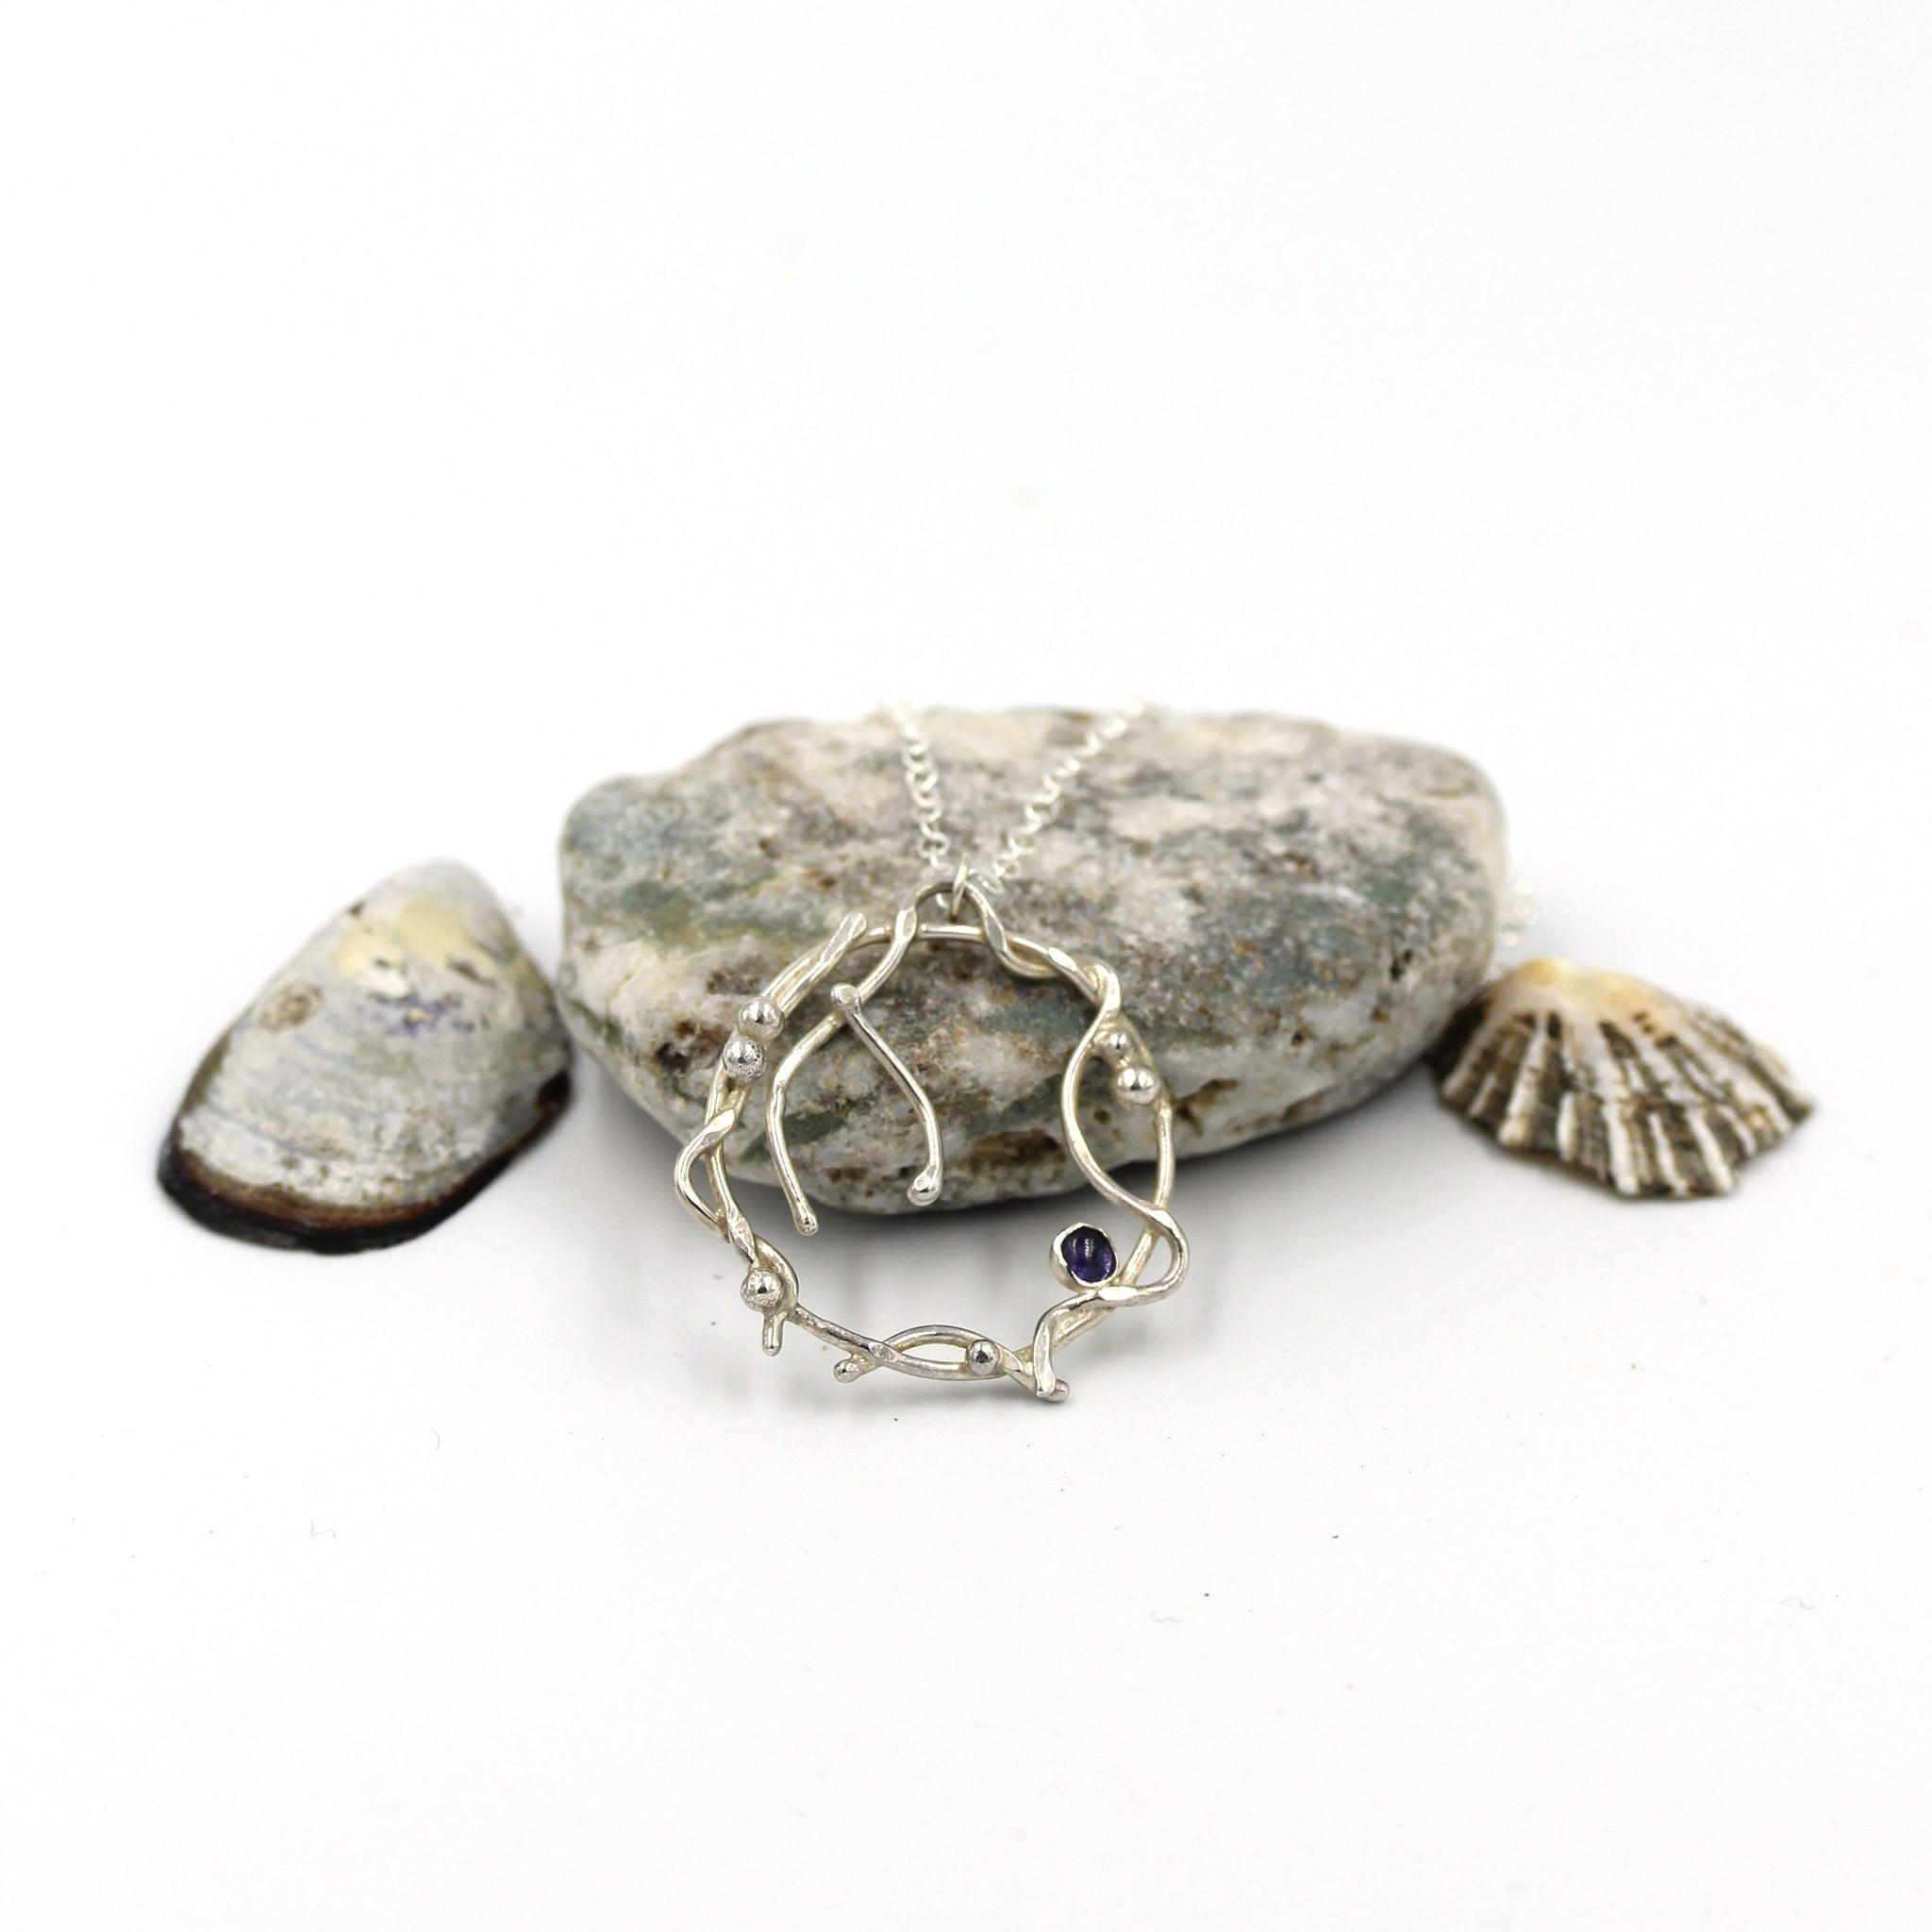 handmade, sea inspired silver necklace by gemma tremayne jewellery